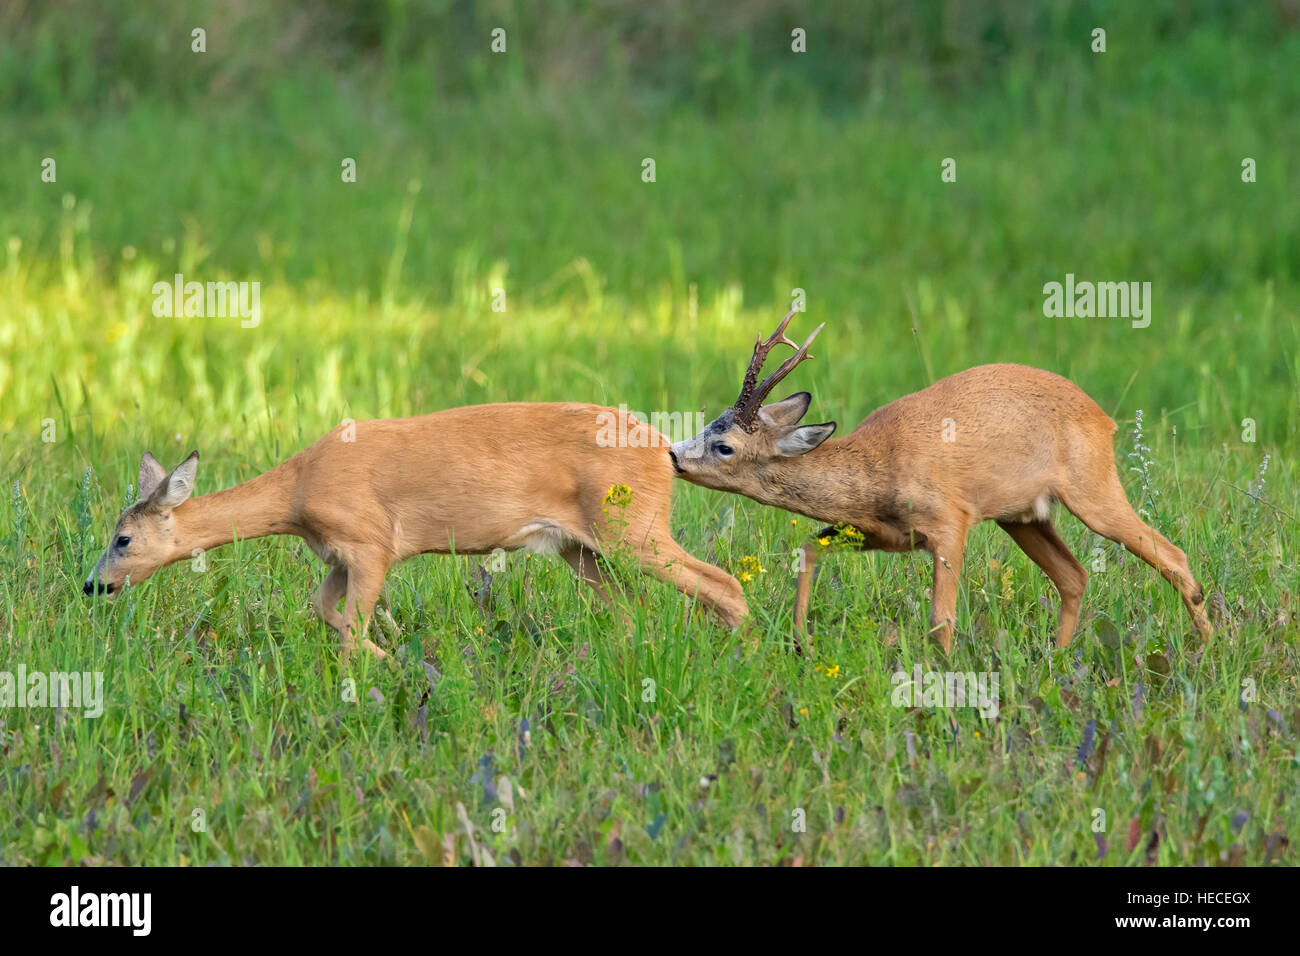 European roe deer (Capreolus capreolus) buck sniffing behind of doe in heat before mating during the rut in summer - Stock Image